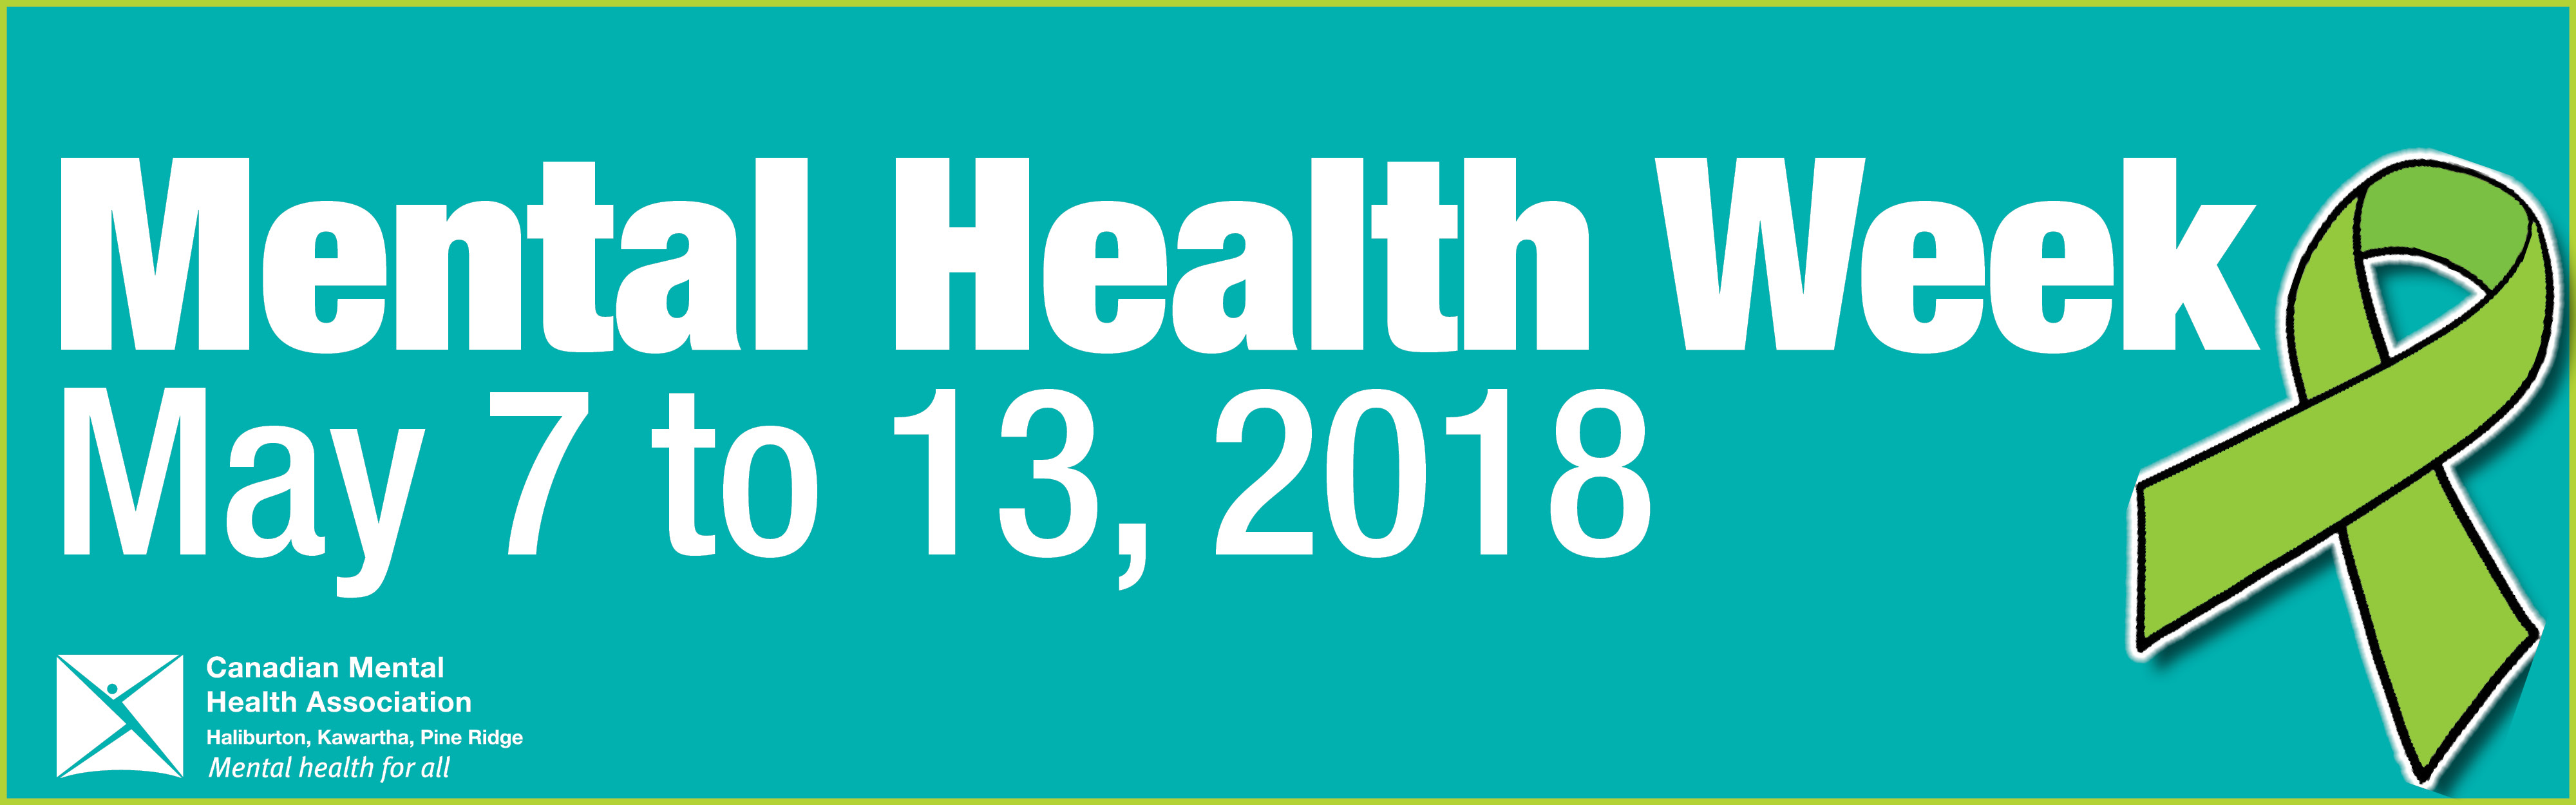 Mental Health Week banner